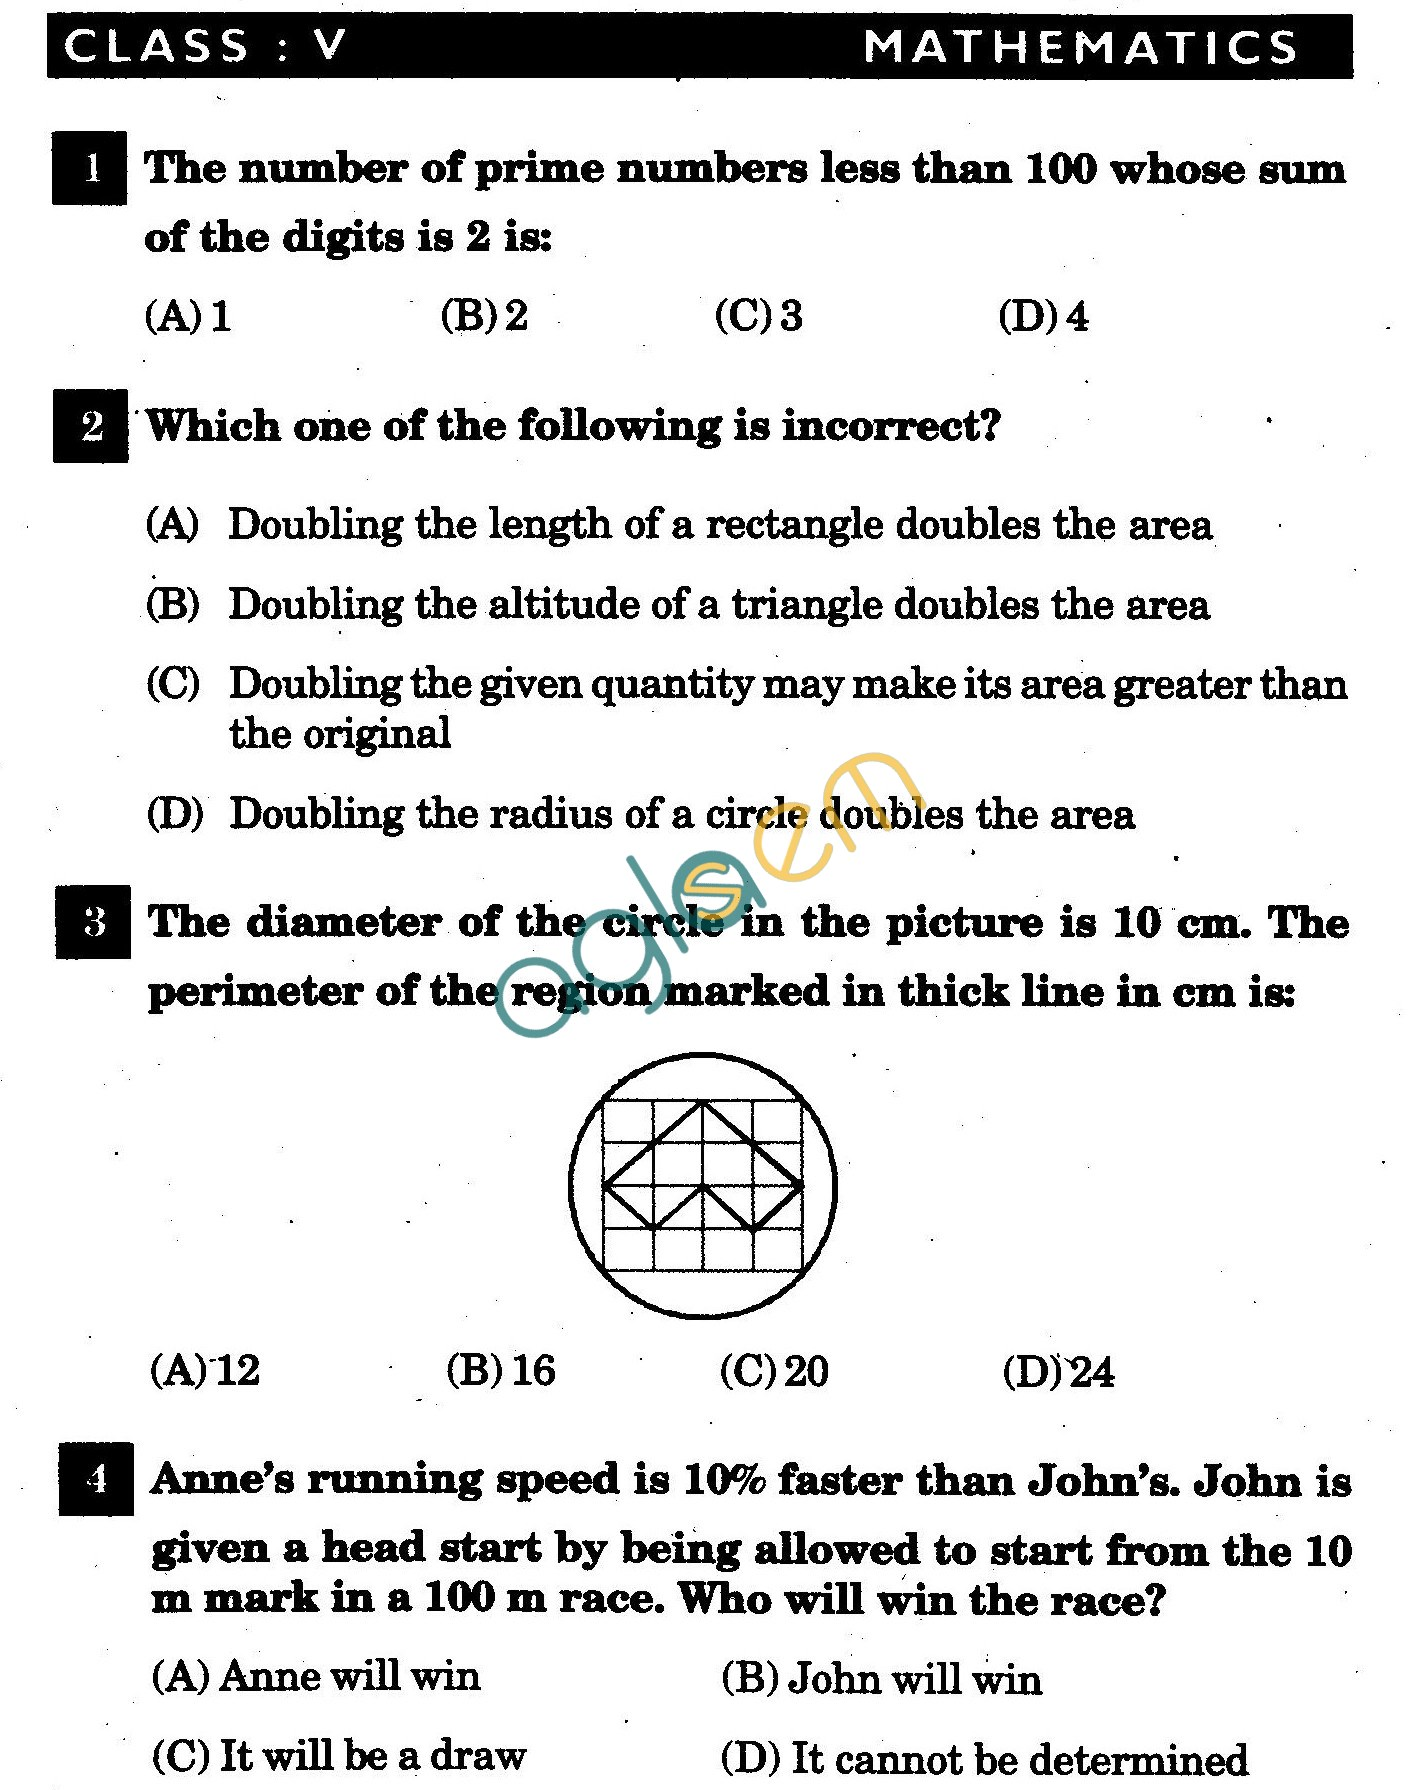 NSTSE 2011 Class V Question Paper with Answers - Mathematics